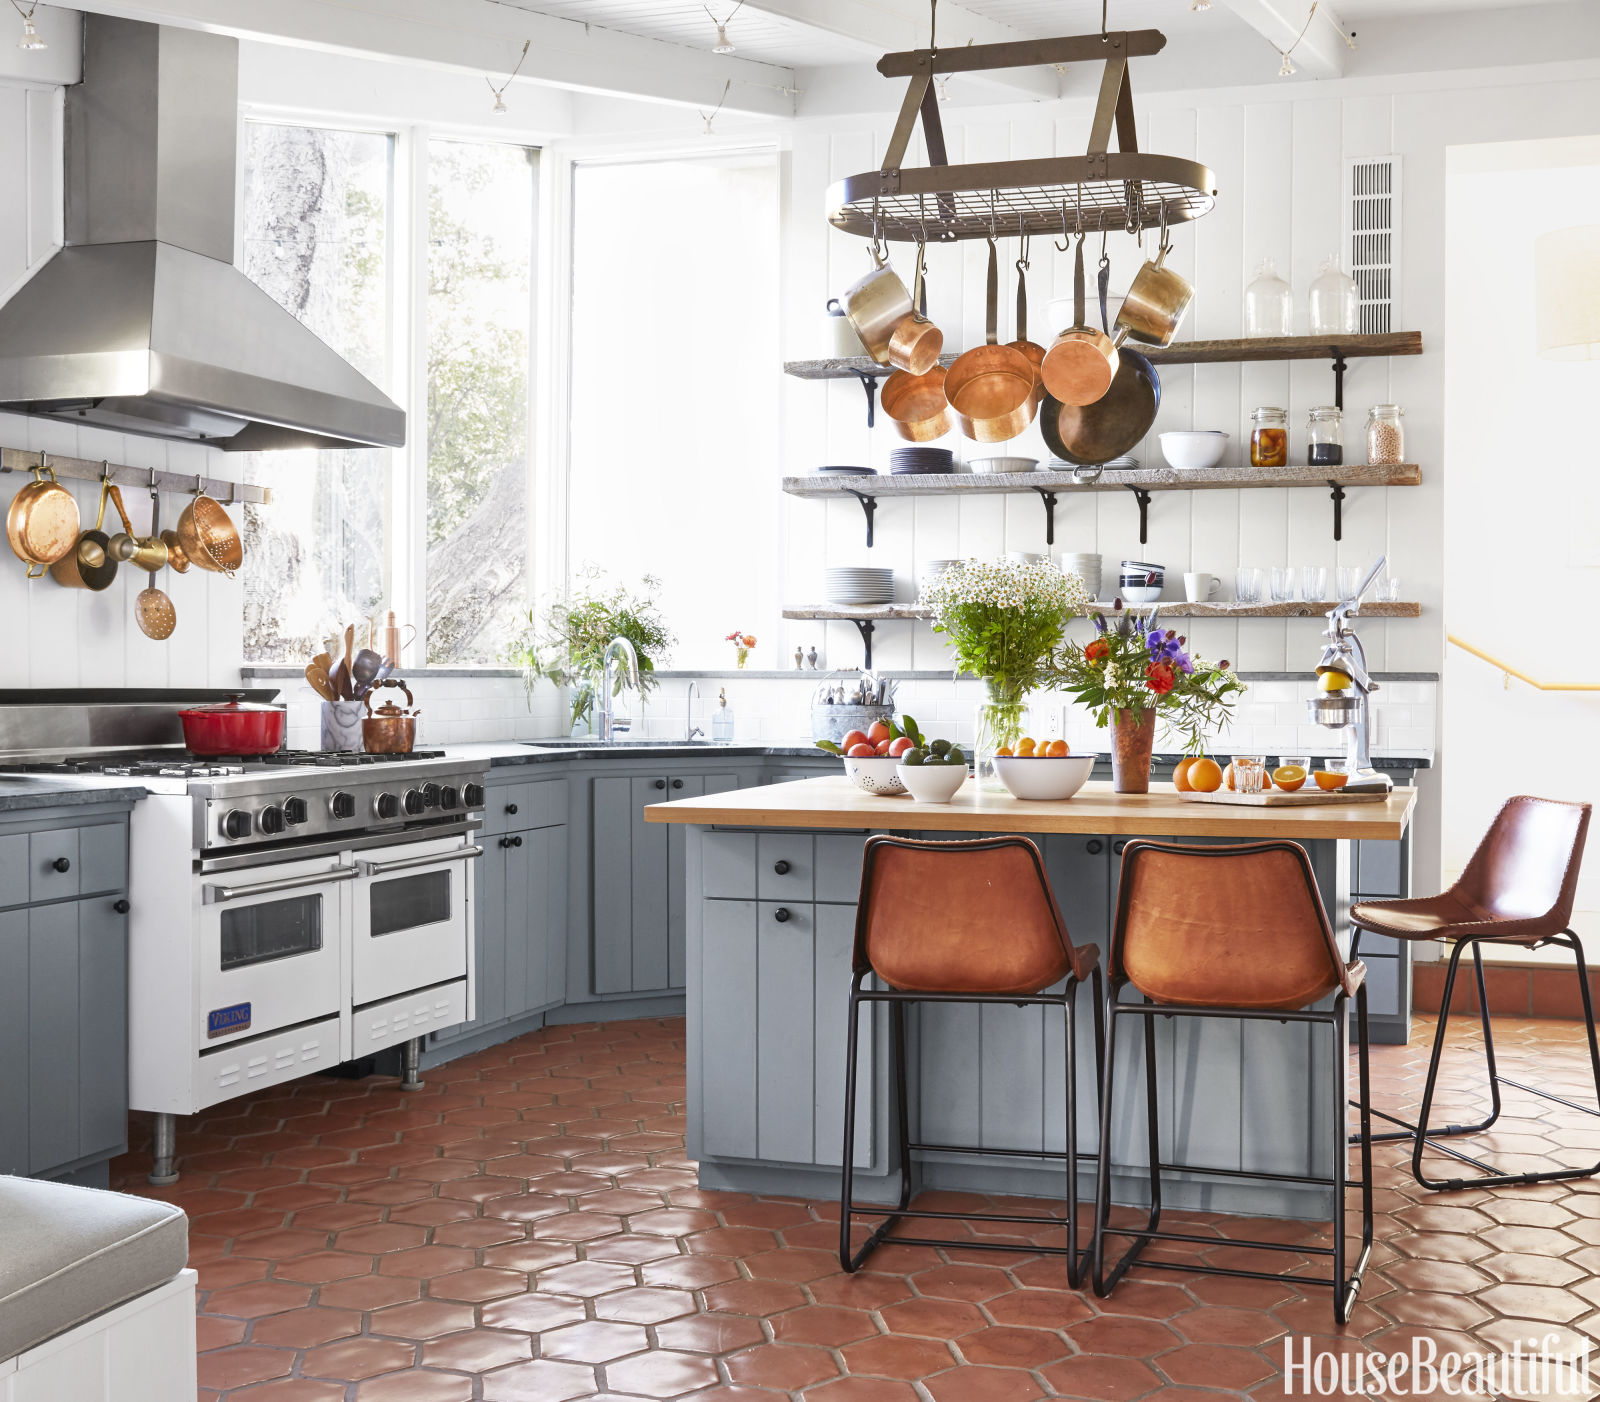 Kitchen Interior Design Styles: Une Maison De Rêve Influencée Par L'Europe En Californie